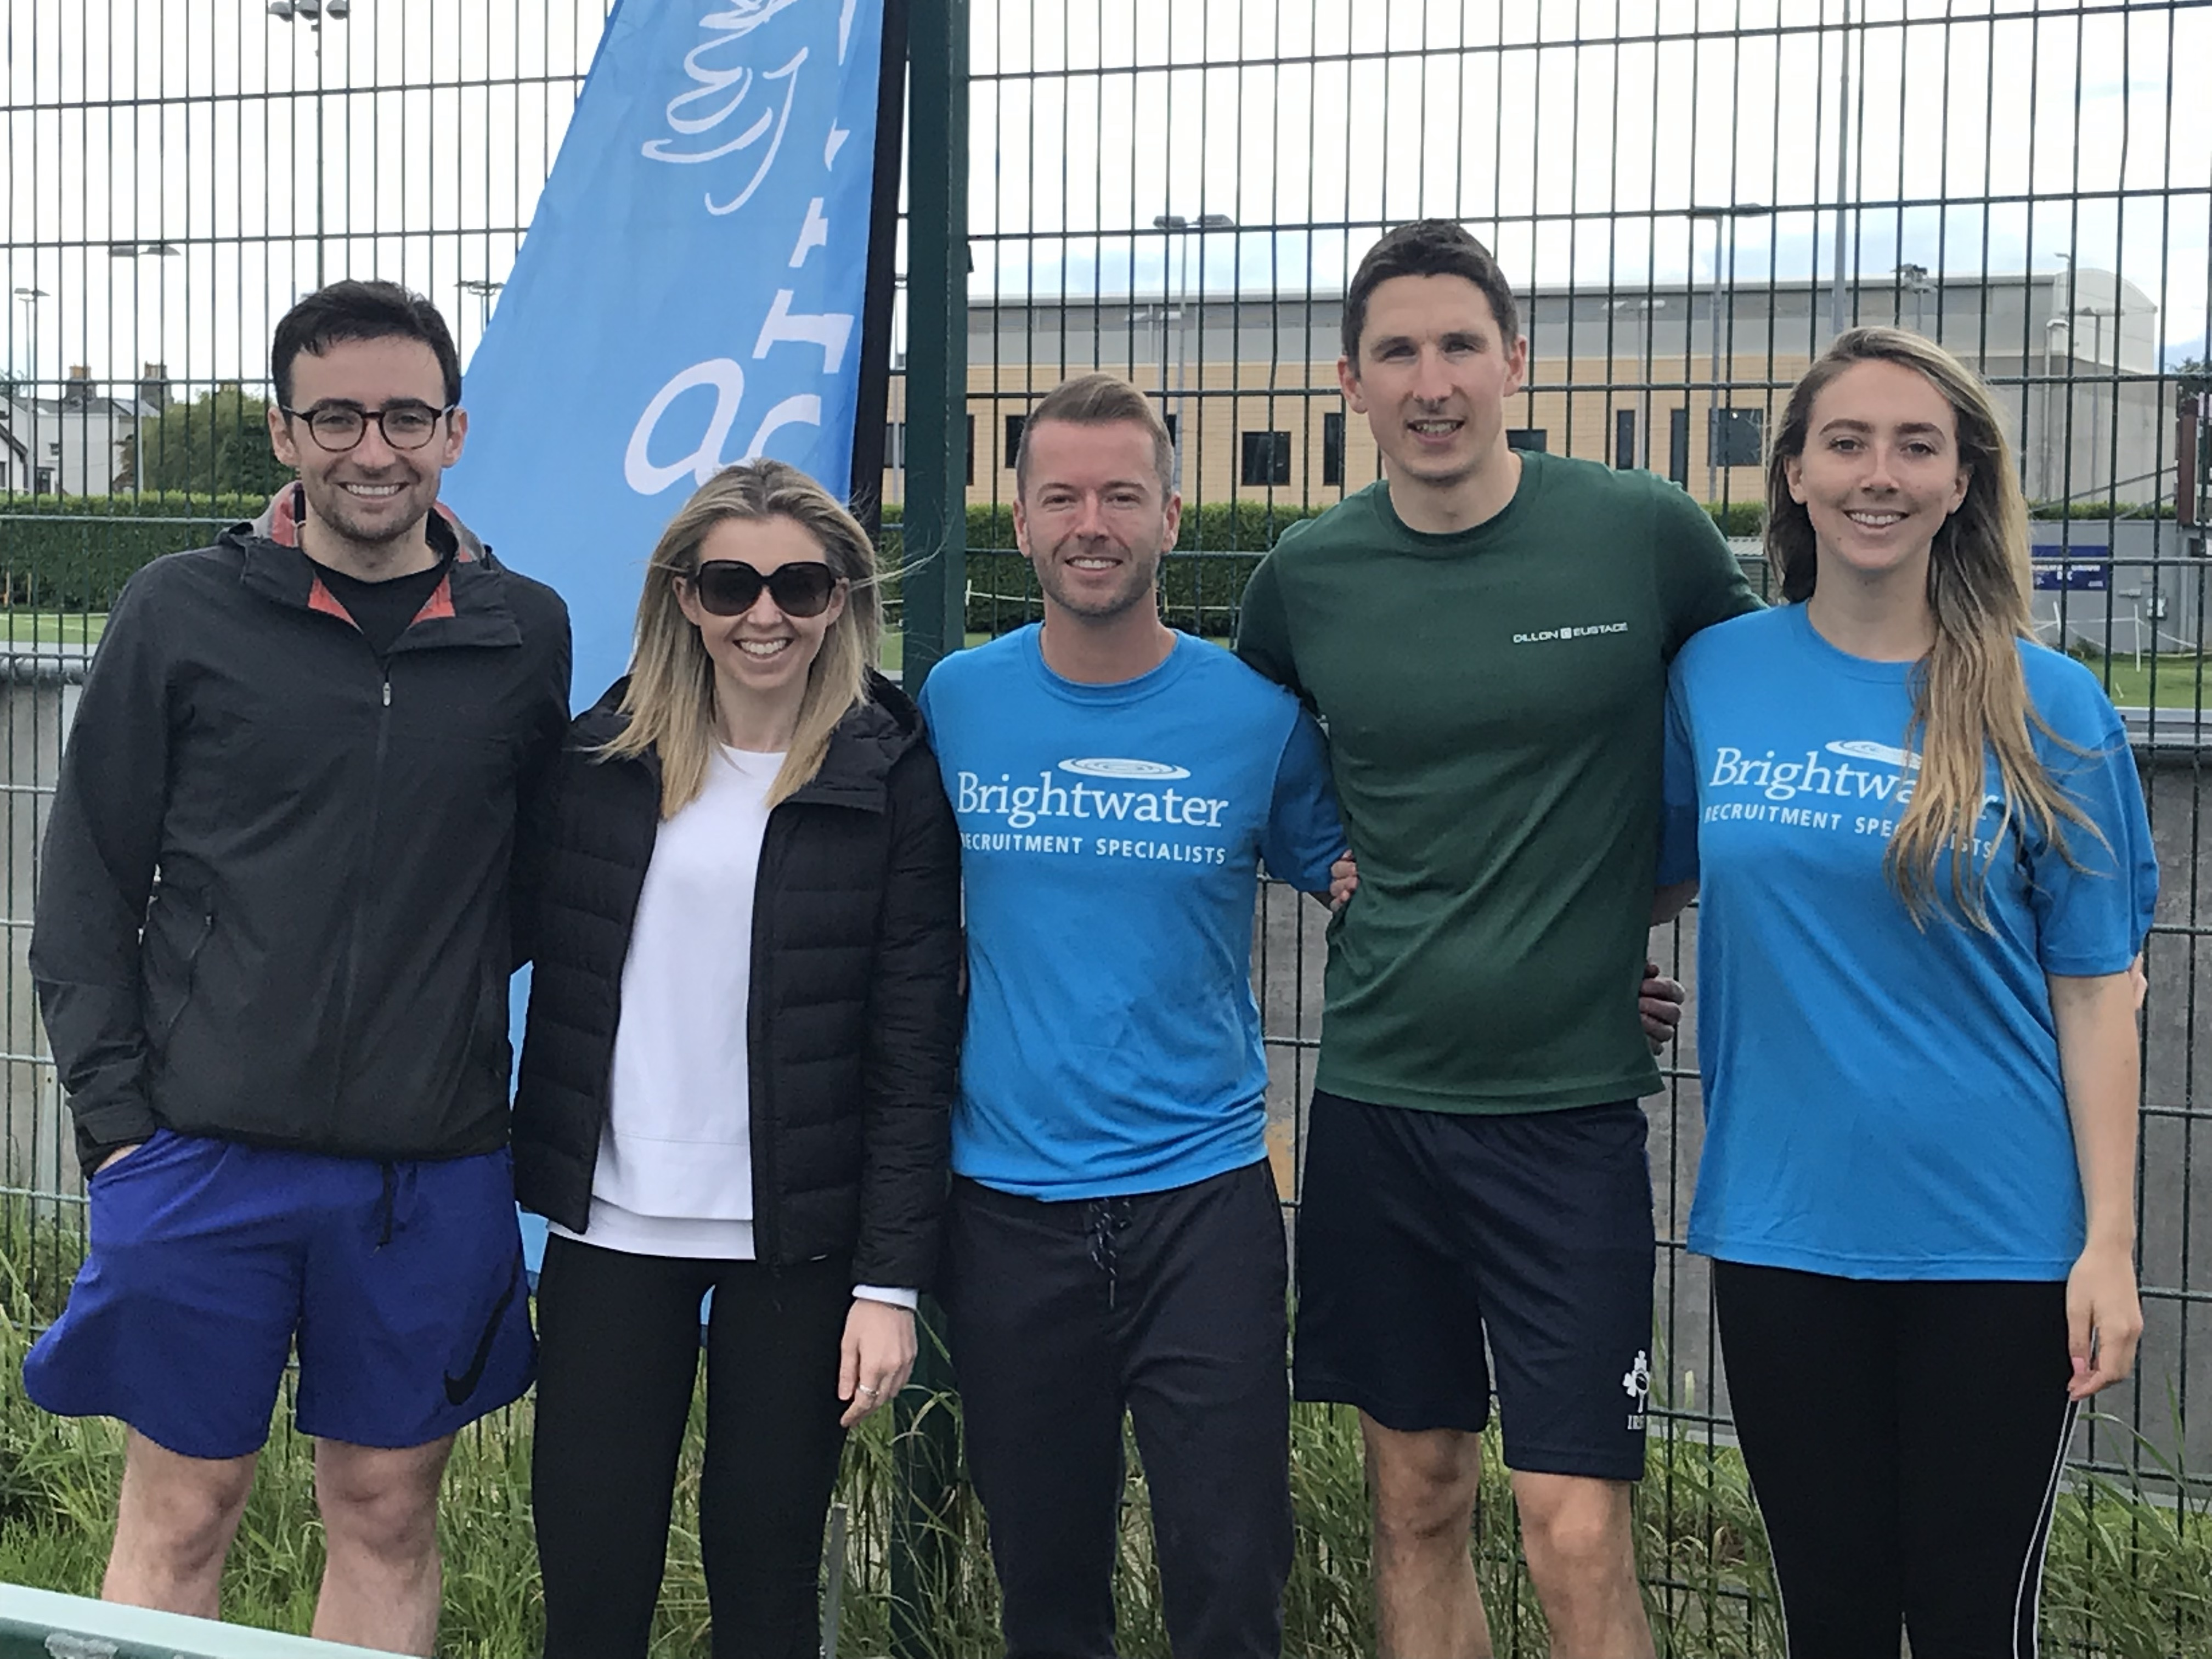 Brightwater's Legal Team Mike Minogue, Sorcha Corcoran with SYS chair Alex Kennedy, committee members James Reidy & Rachel Fitzsimons